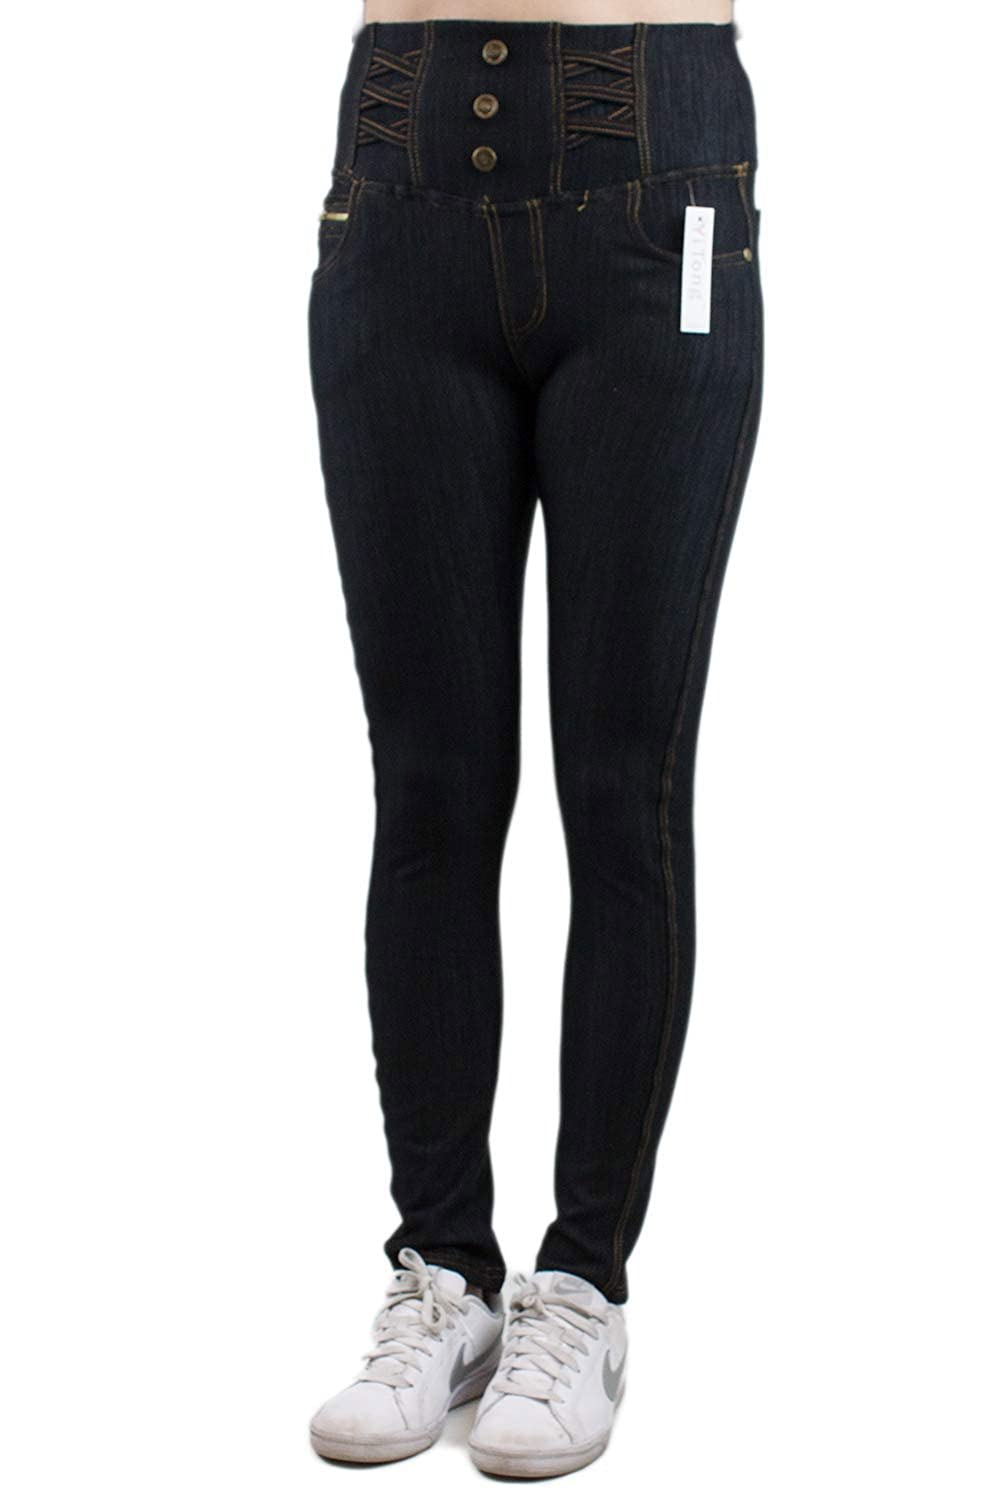 Barbra Collection Women's High Waist Jeggings with Fleece Lining